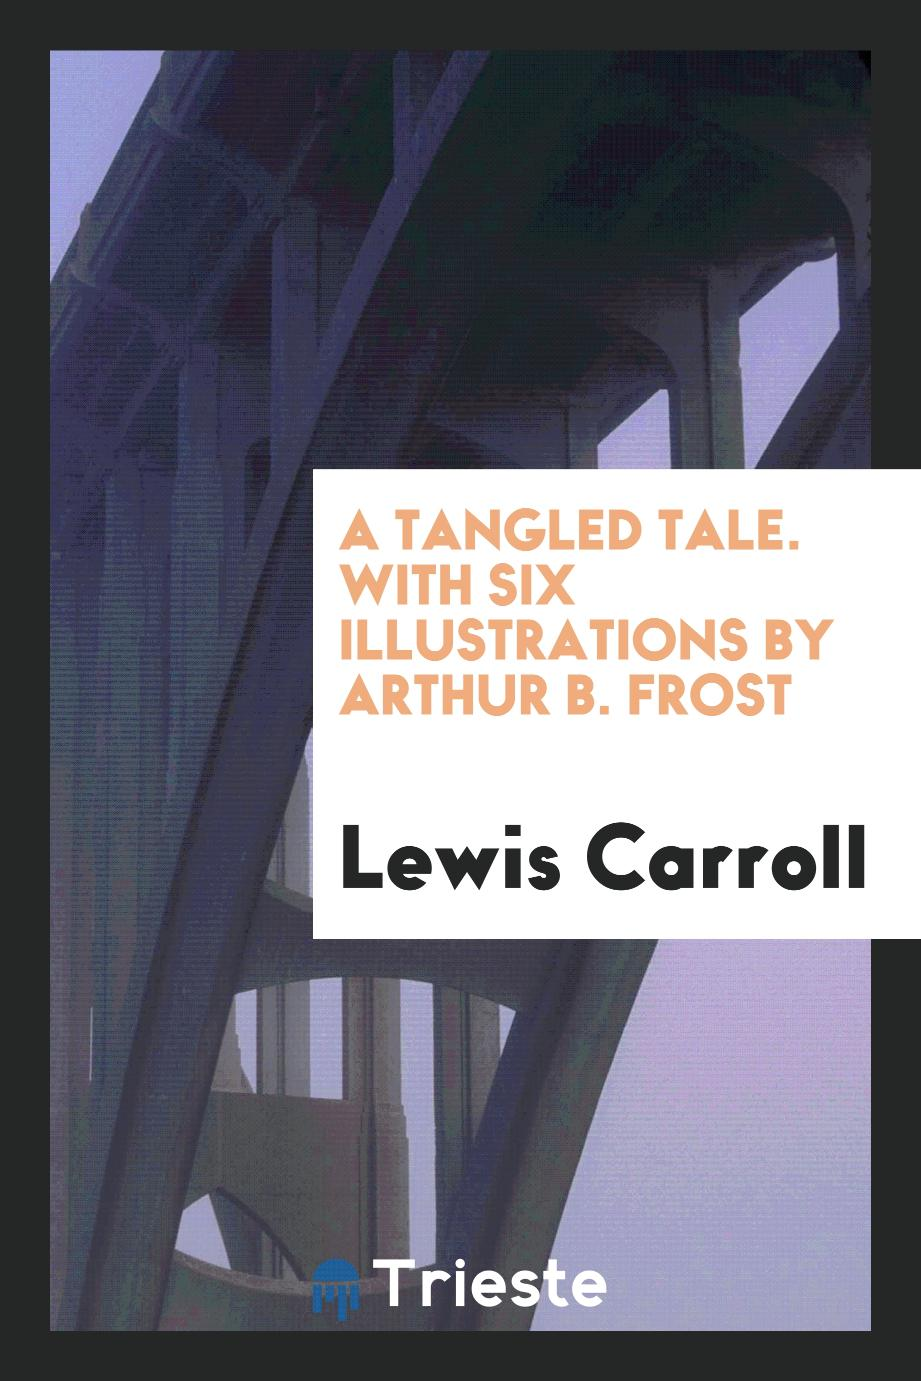 A Tangled Tale. With Six Illustrations by Arthur B. Frost